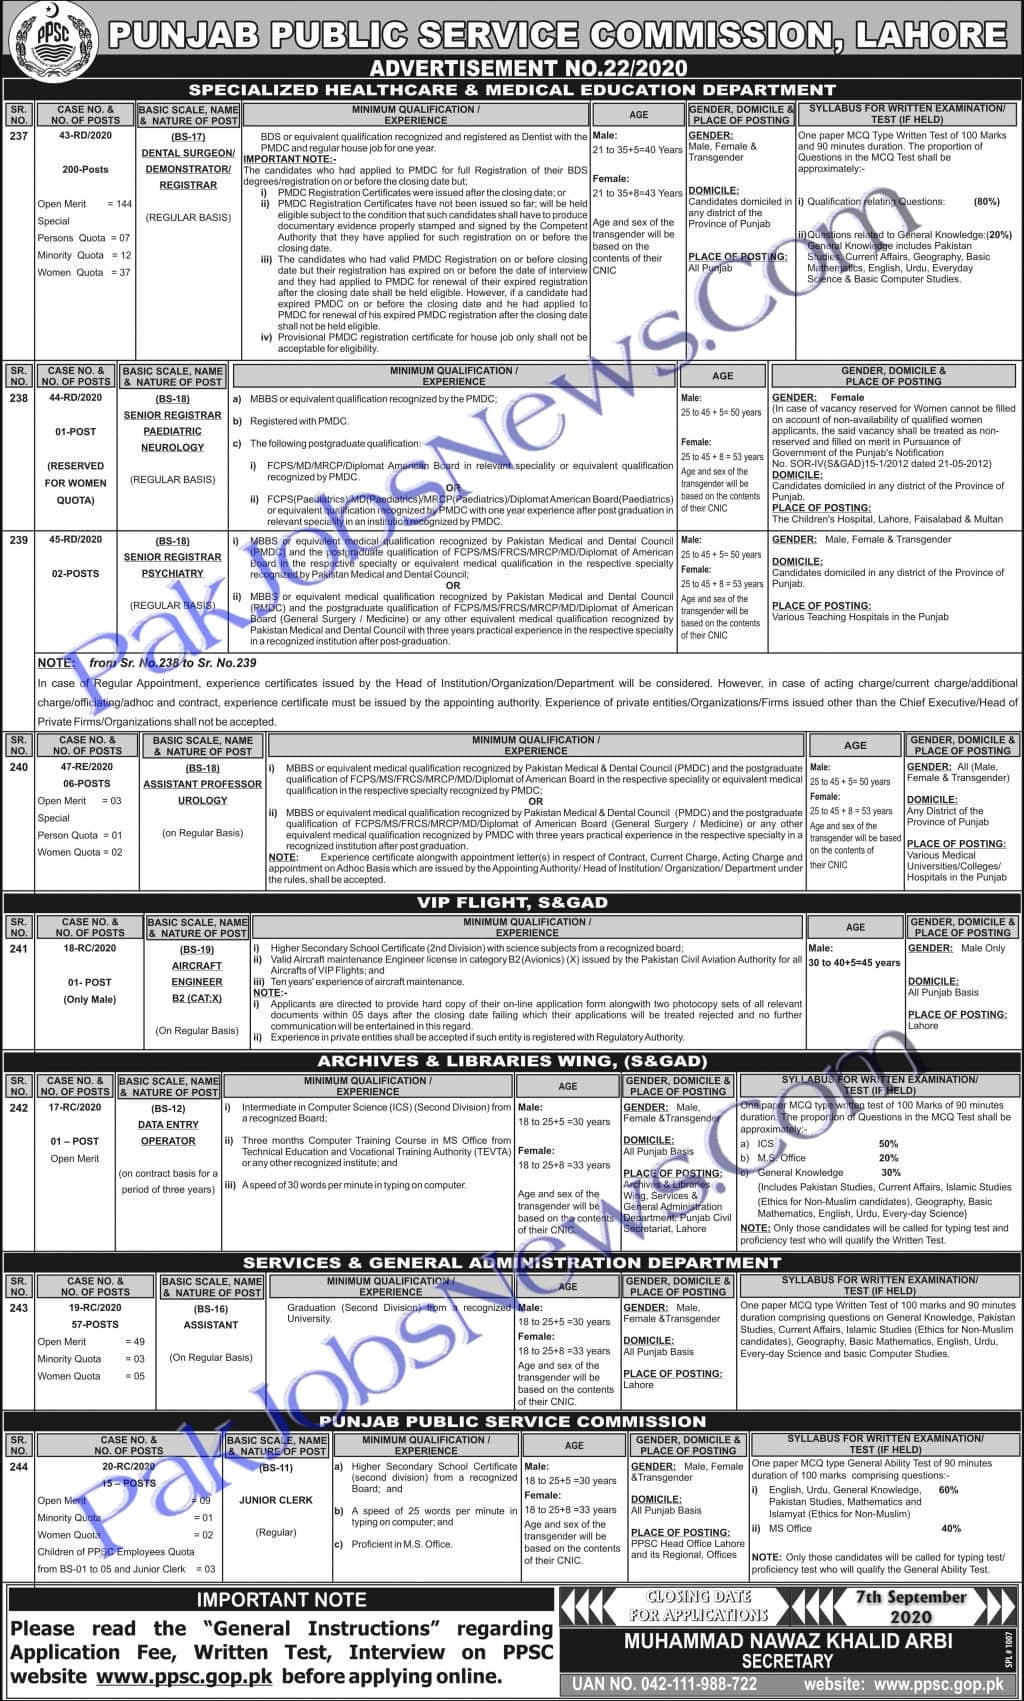 New PPSC Vacancies Advertisement in August 2020